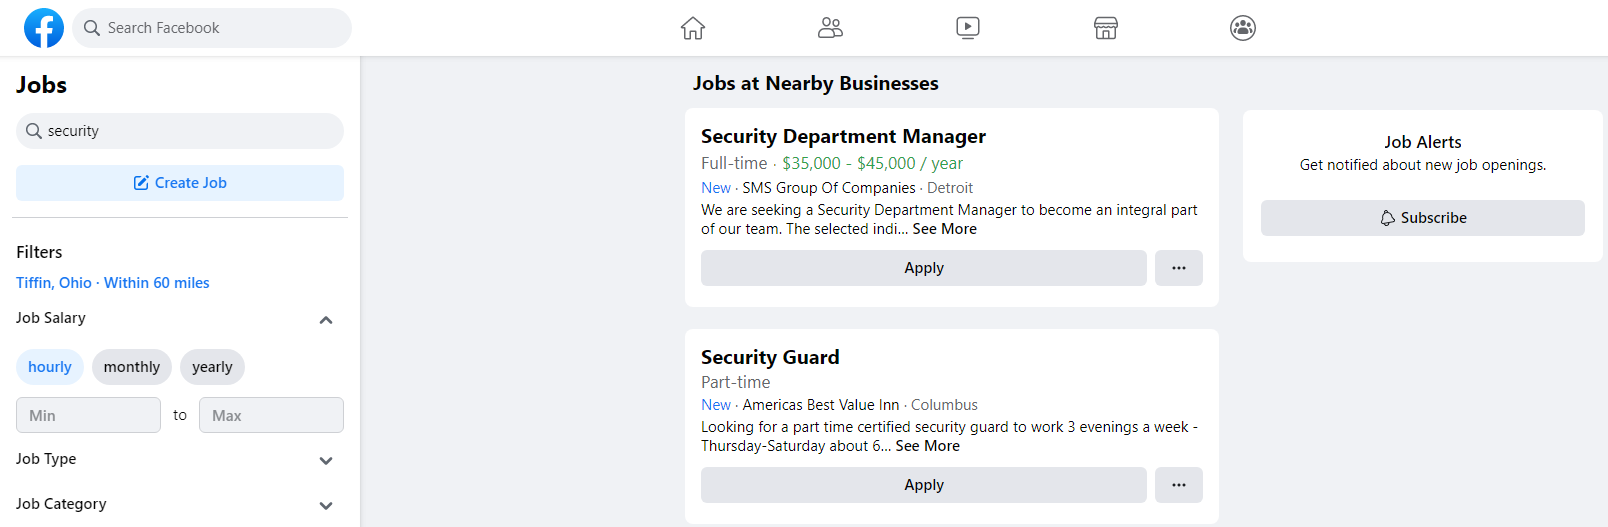 facebook jobs search page